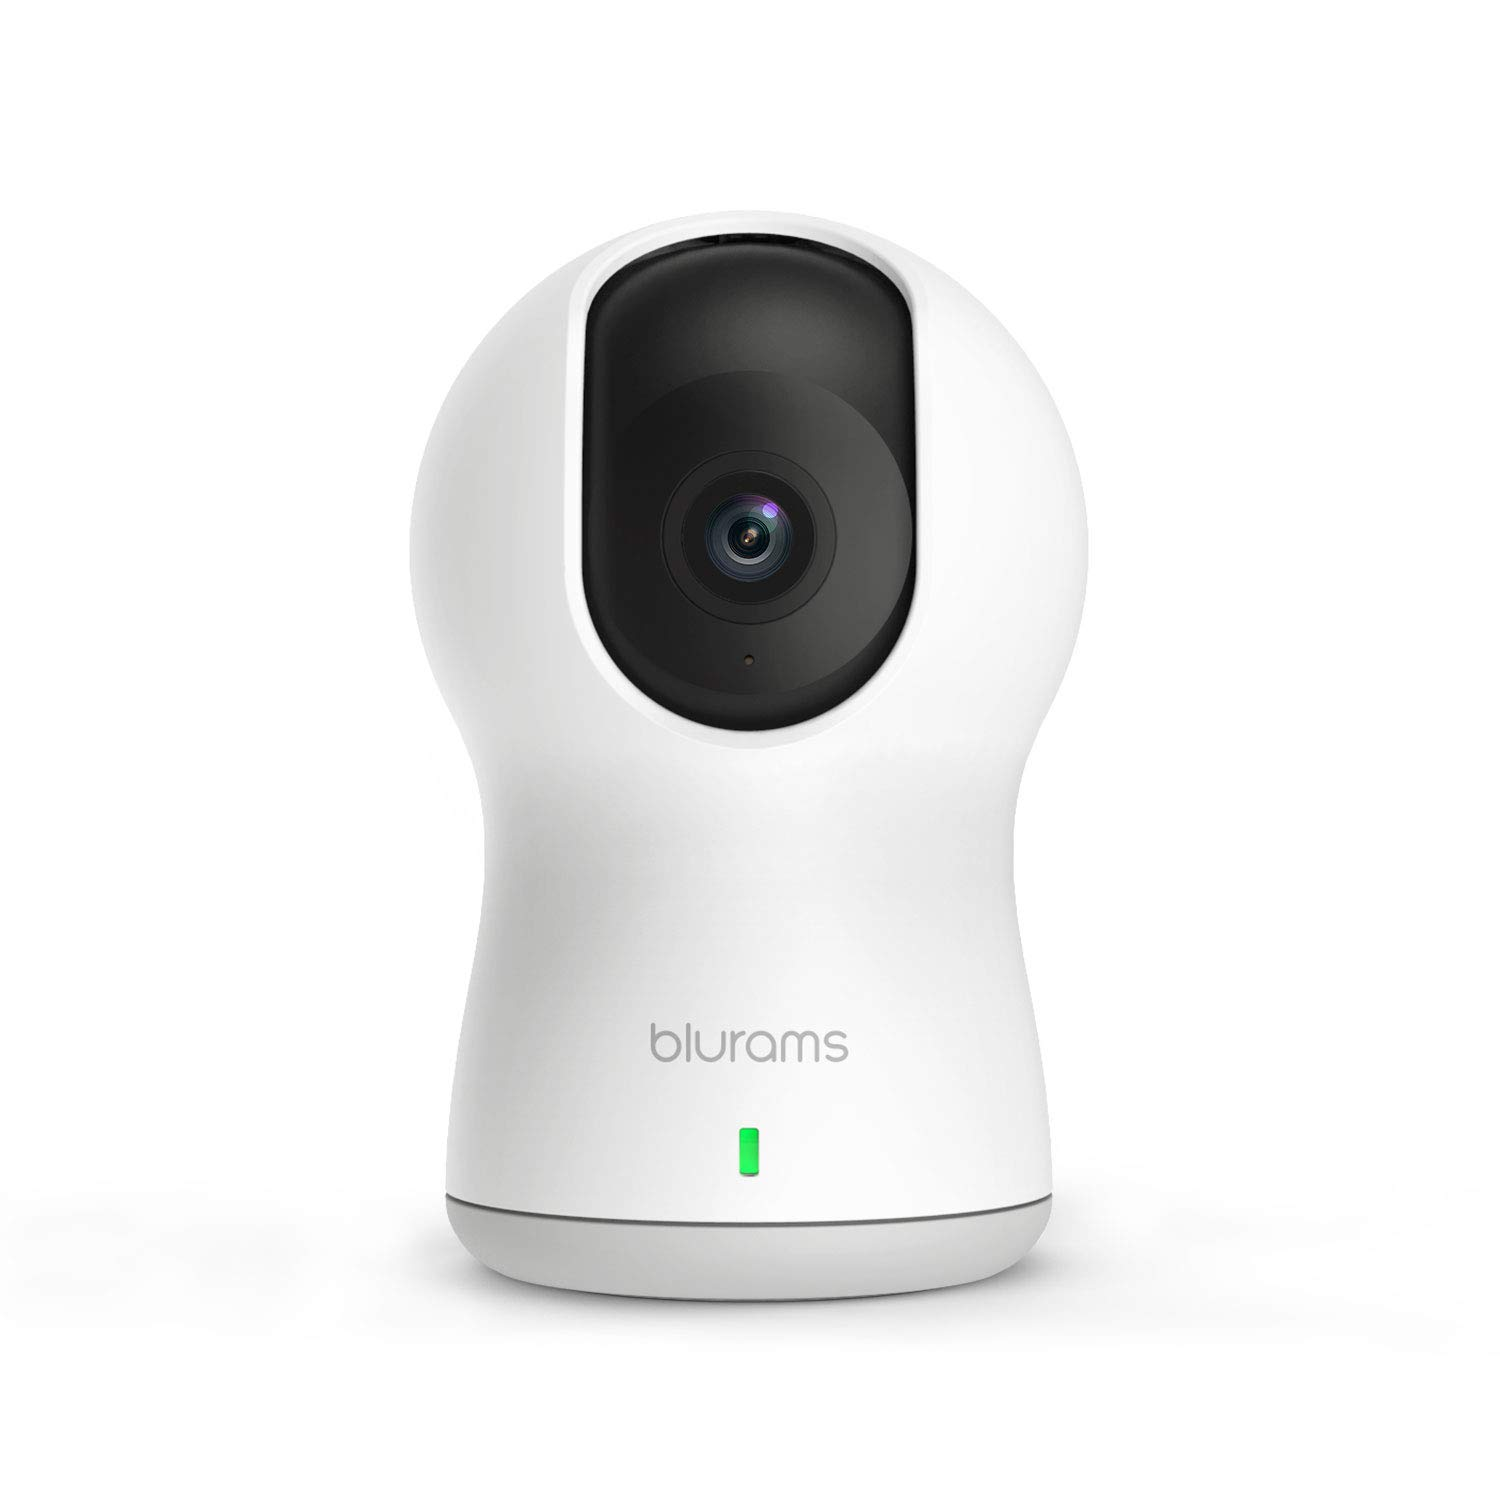 blurams Dome Pro, 1080p Security Camera with Siren | PTZ Surveillance System with Facial Recognition, Human/Sound Detection, Person Alerts, Night Vision | Cloud/Local Available | Works with Alexa by Blurams